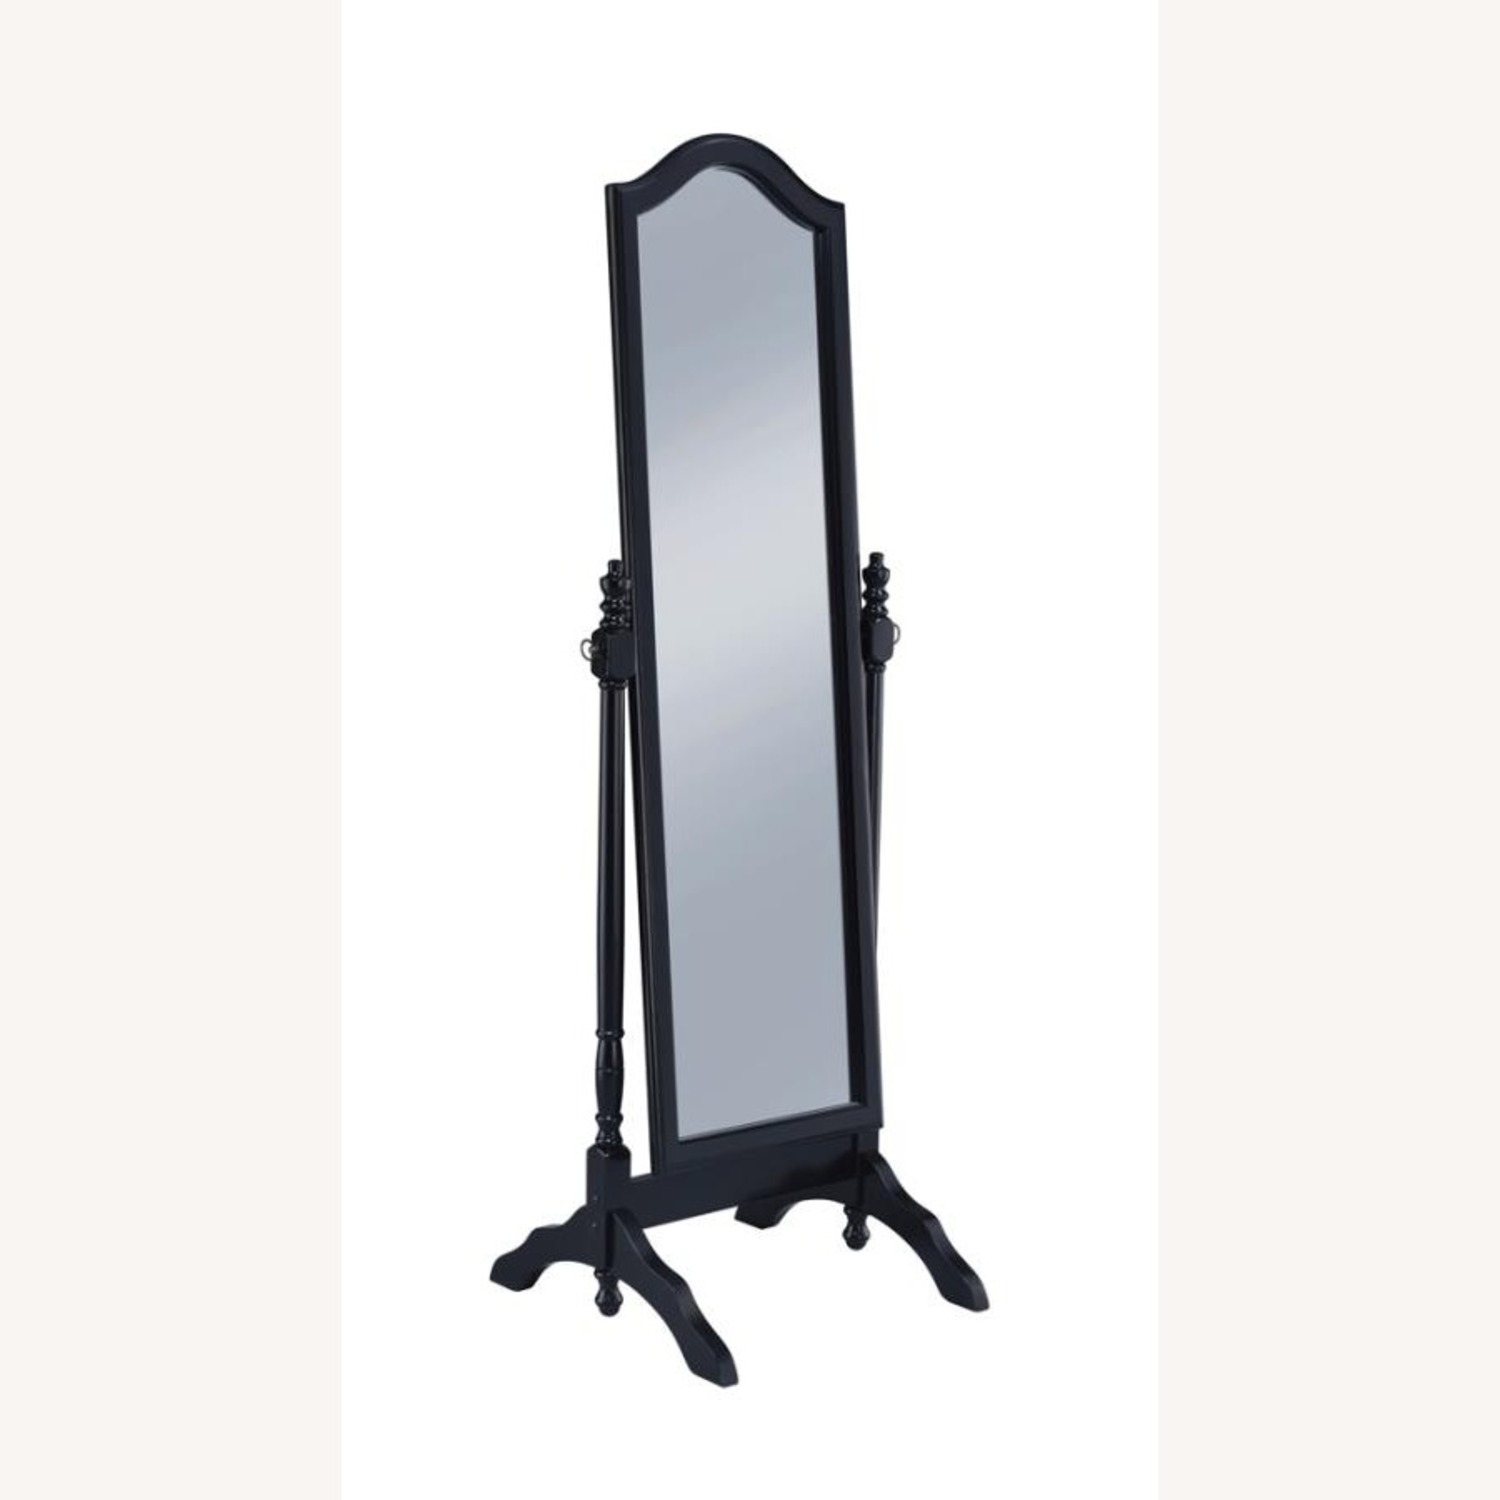 Cheval Mirror In Black Finish W/ Turned Posts - image-0